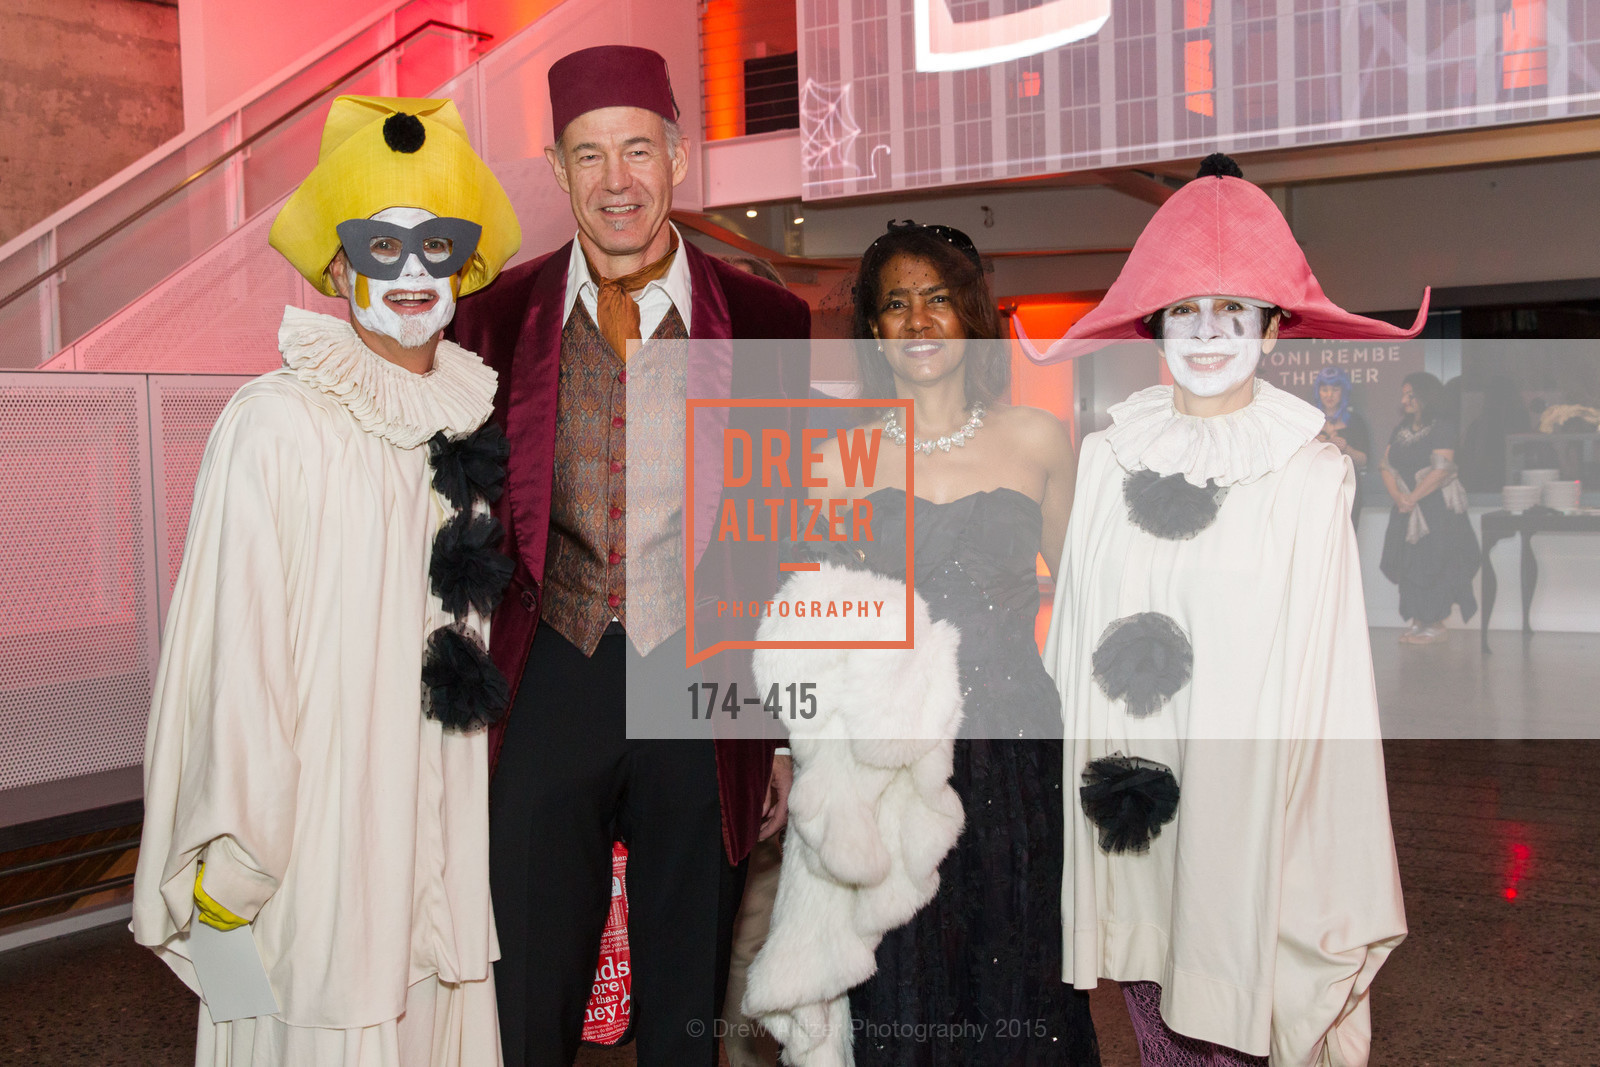 Rusty Rueff, David Riemer, Carla Riemer, Patti Rueff, SPOOKED AT THE STRAND Presented by the American Conservatory Theater, The Strand Theater. 1127 Market Street, October 26th, 2015,Drew Altizer, Drew Altizer Photography, full-service agency, private events, San Francisco photographer, photographer california